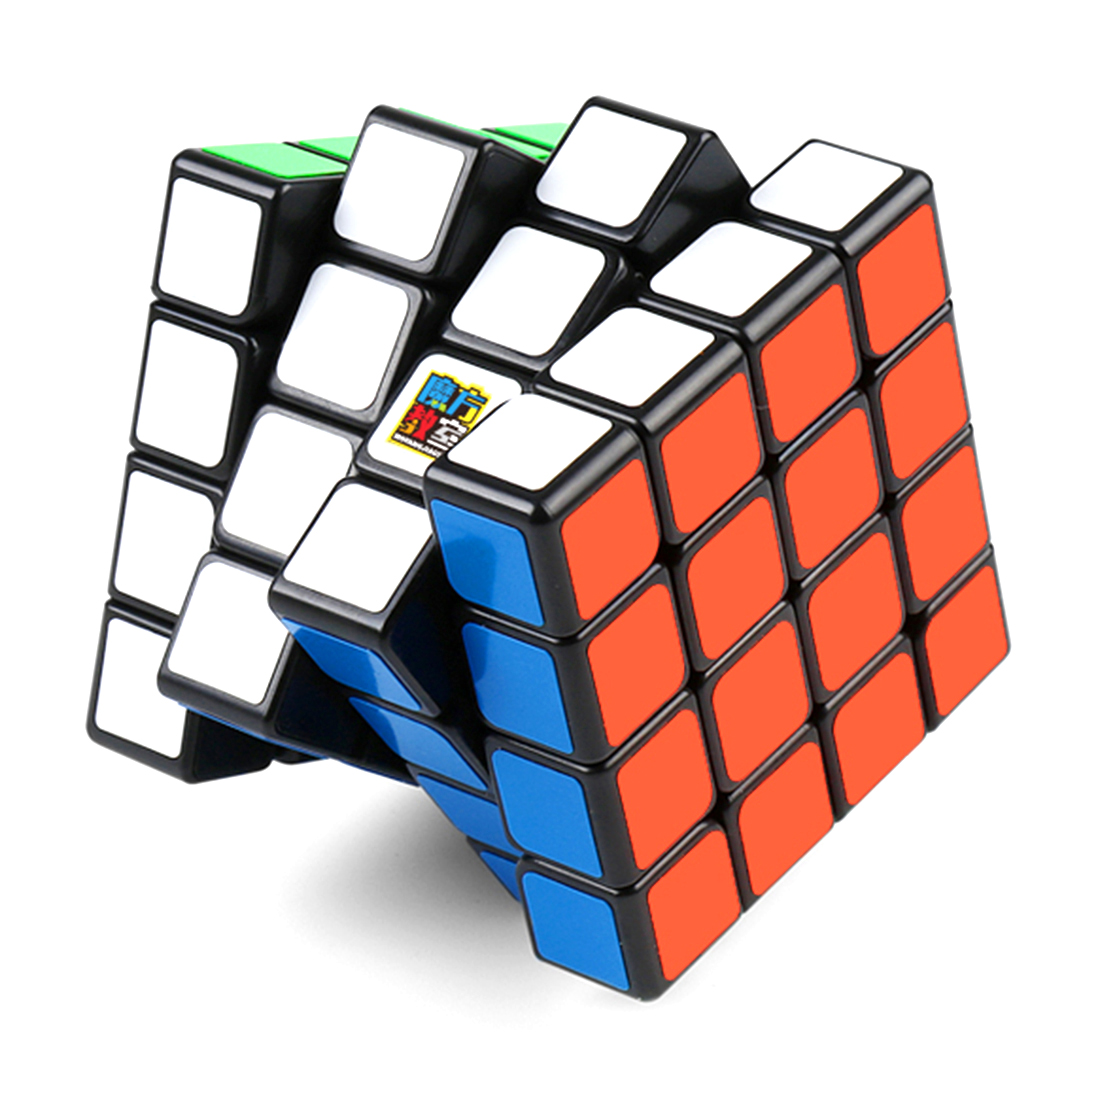 MoYu MF8840 MF4C 4x4 Magic Cube Speedcubing Puzzle for Beginner - Black-base shengshou 10x10x10 magic cube puzzle black and white and primary learning